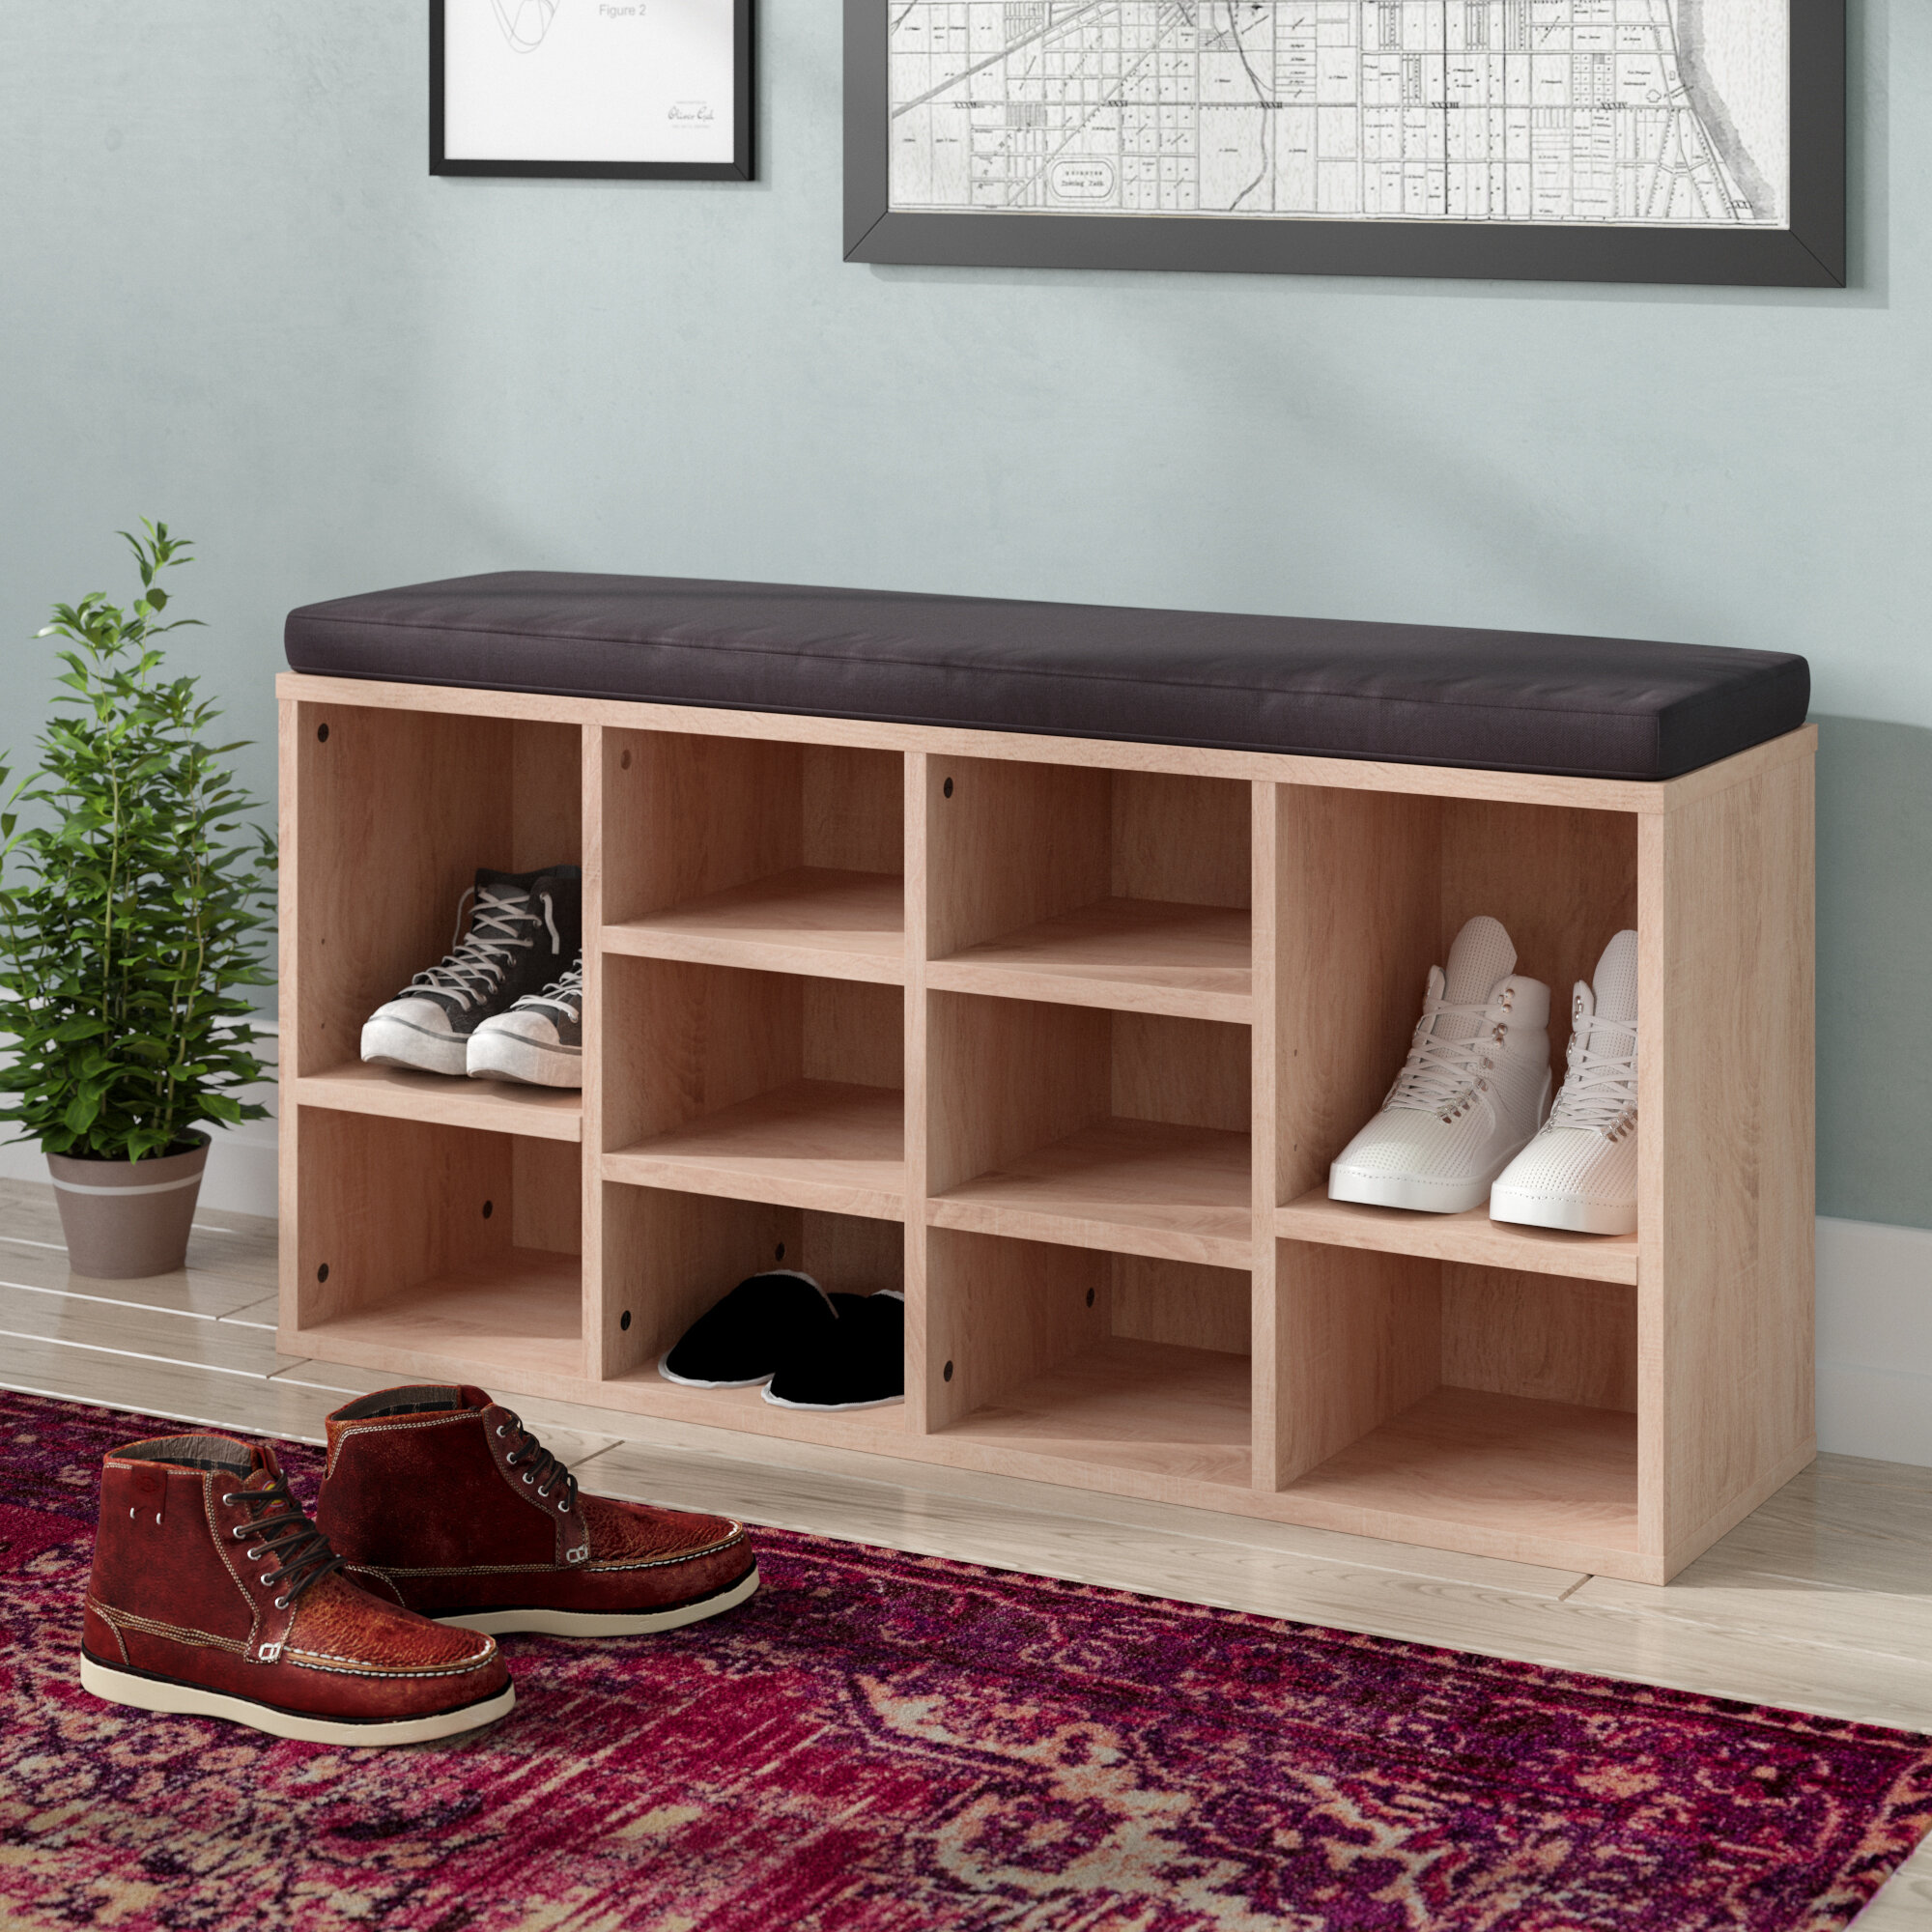 Latitude Run 10 Pair Shoe Storage Bench Reviews Wayfair